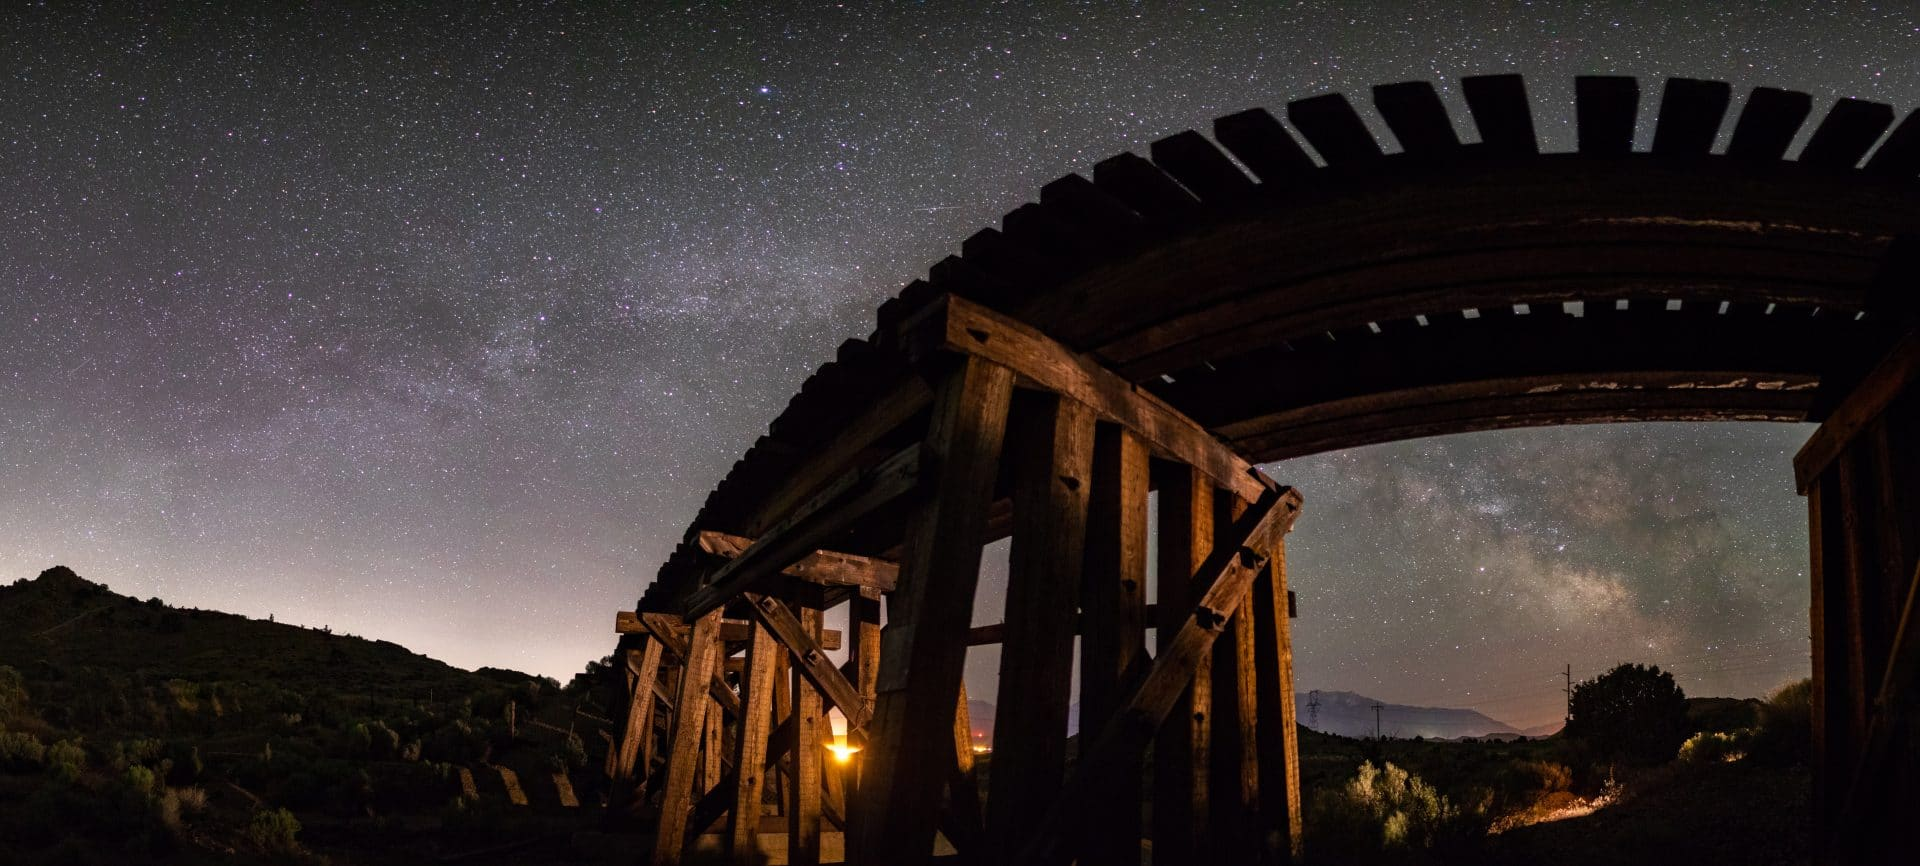 Milky Way getting framed by an abandoned train trestle. The panorama is created very close to the trestle causing extreme distortion and bending of the straight trestle and forcing a cool shape from top to bottom.